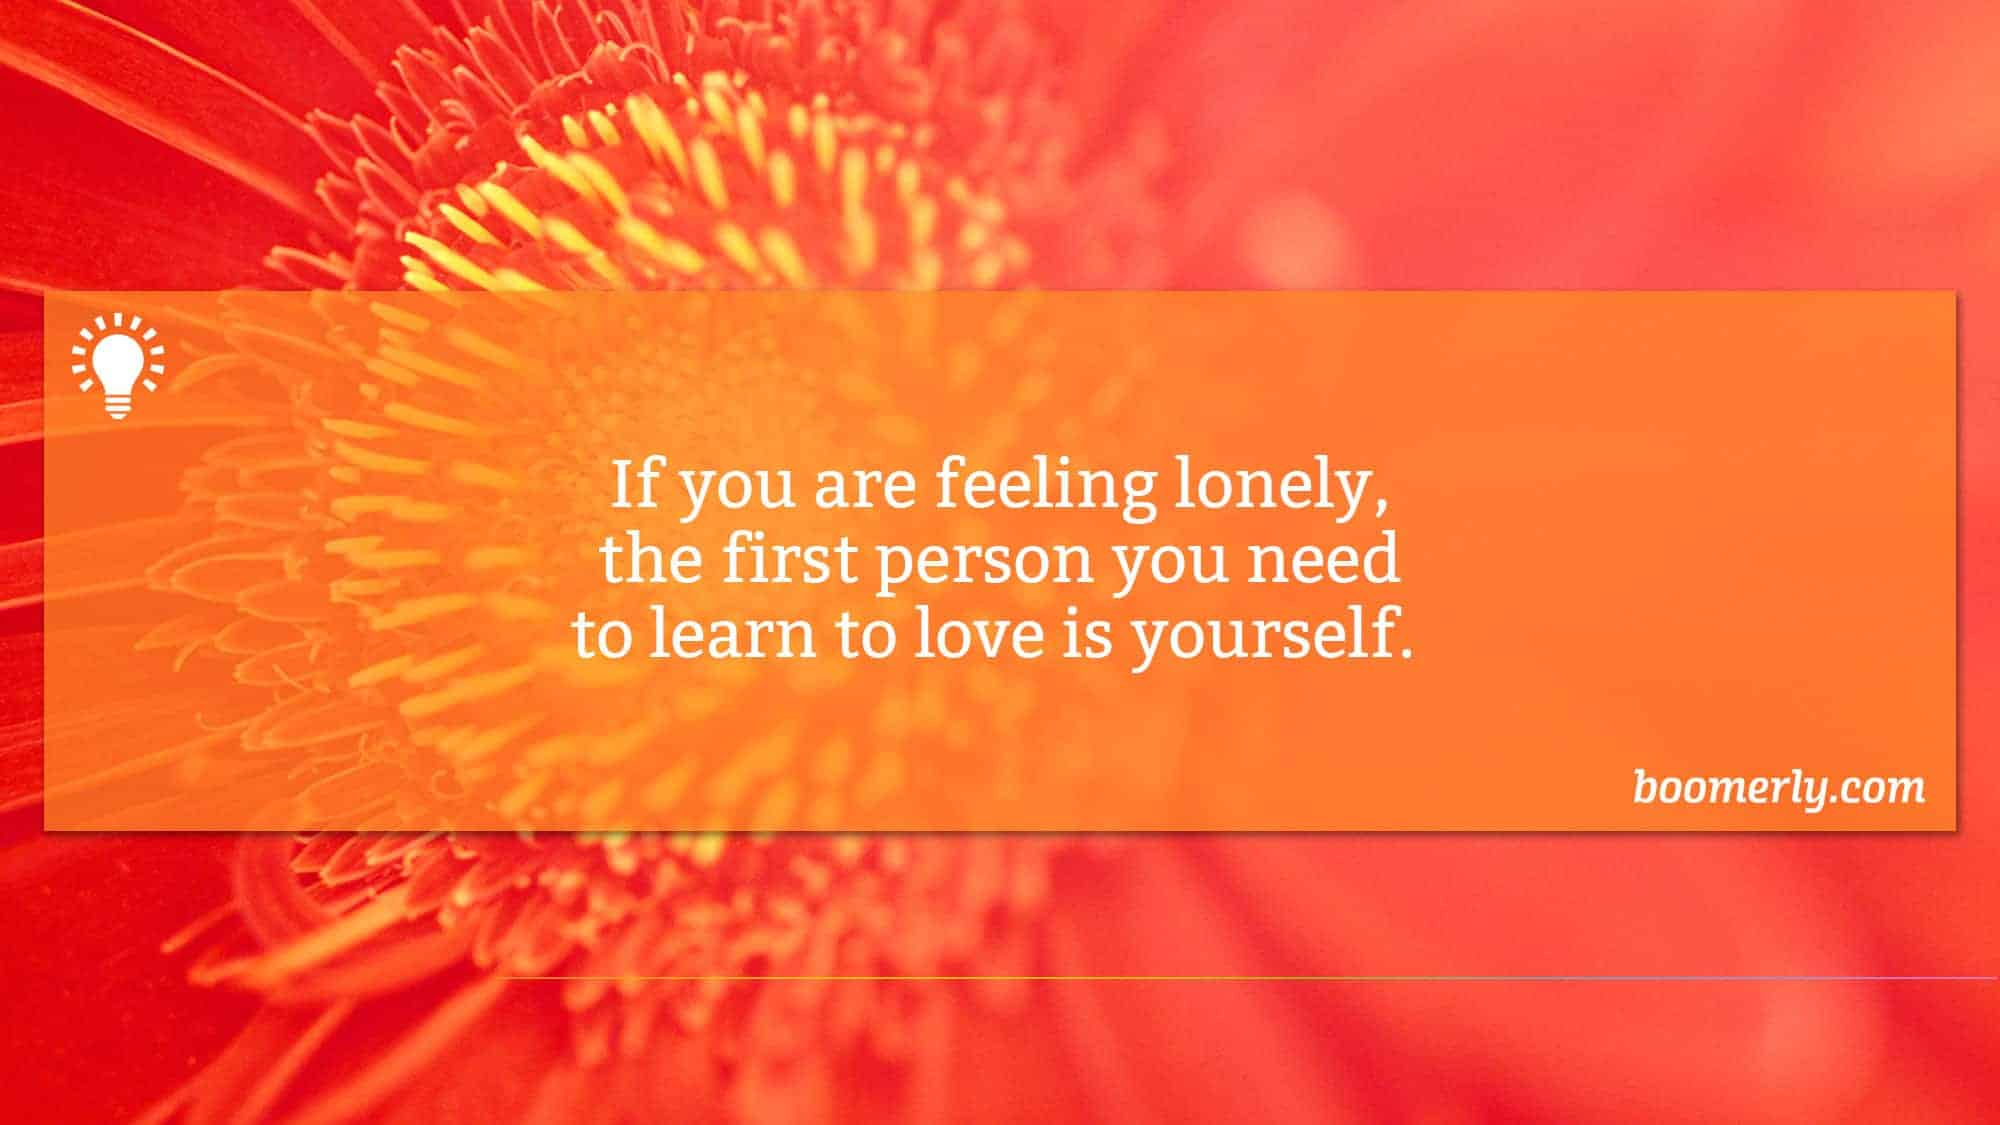 Feeling Lonely - If you are feeling lonely, the first person you need to learn to love is yourself.